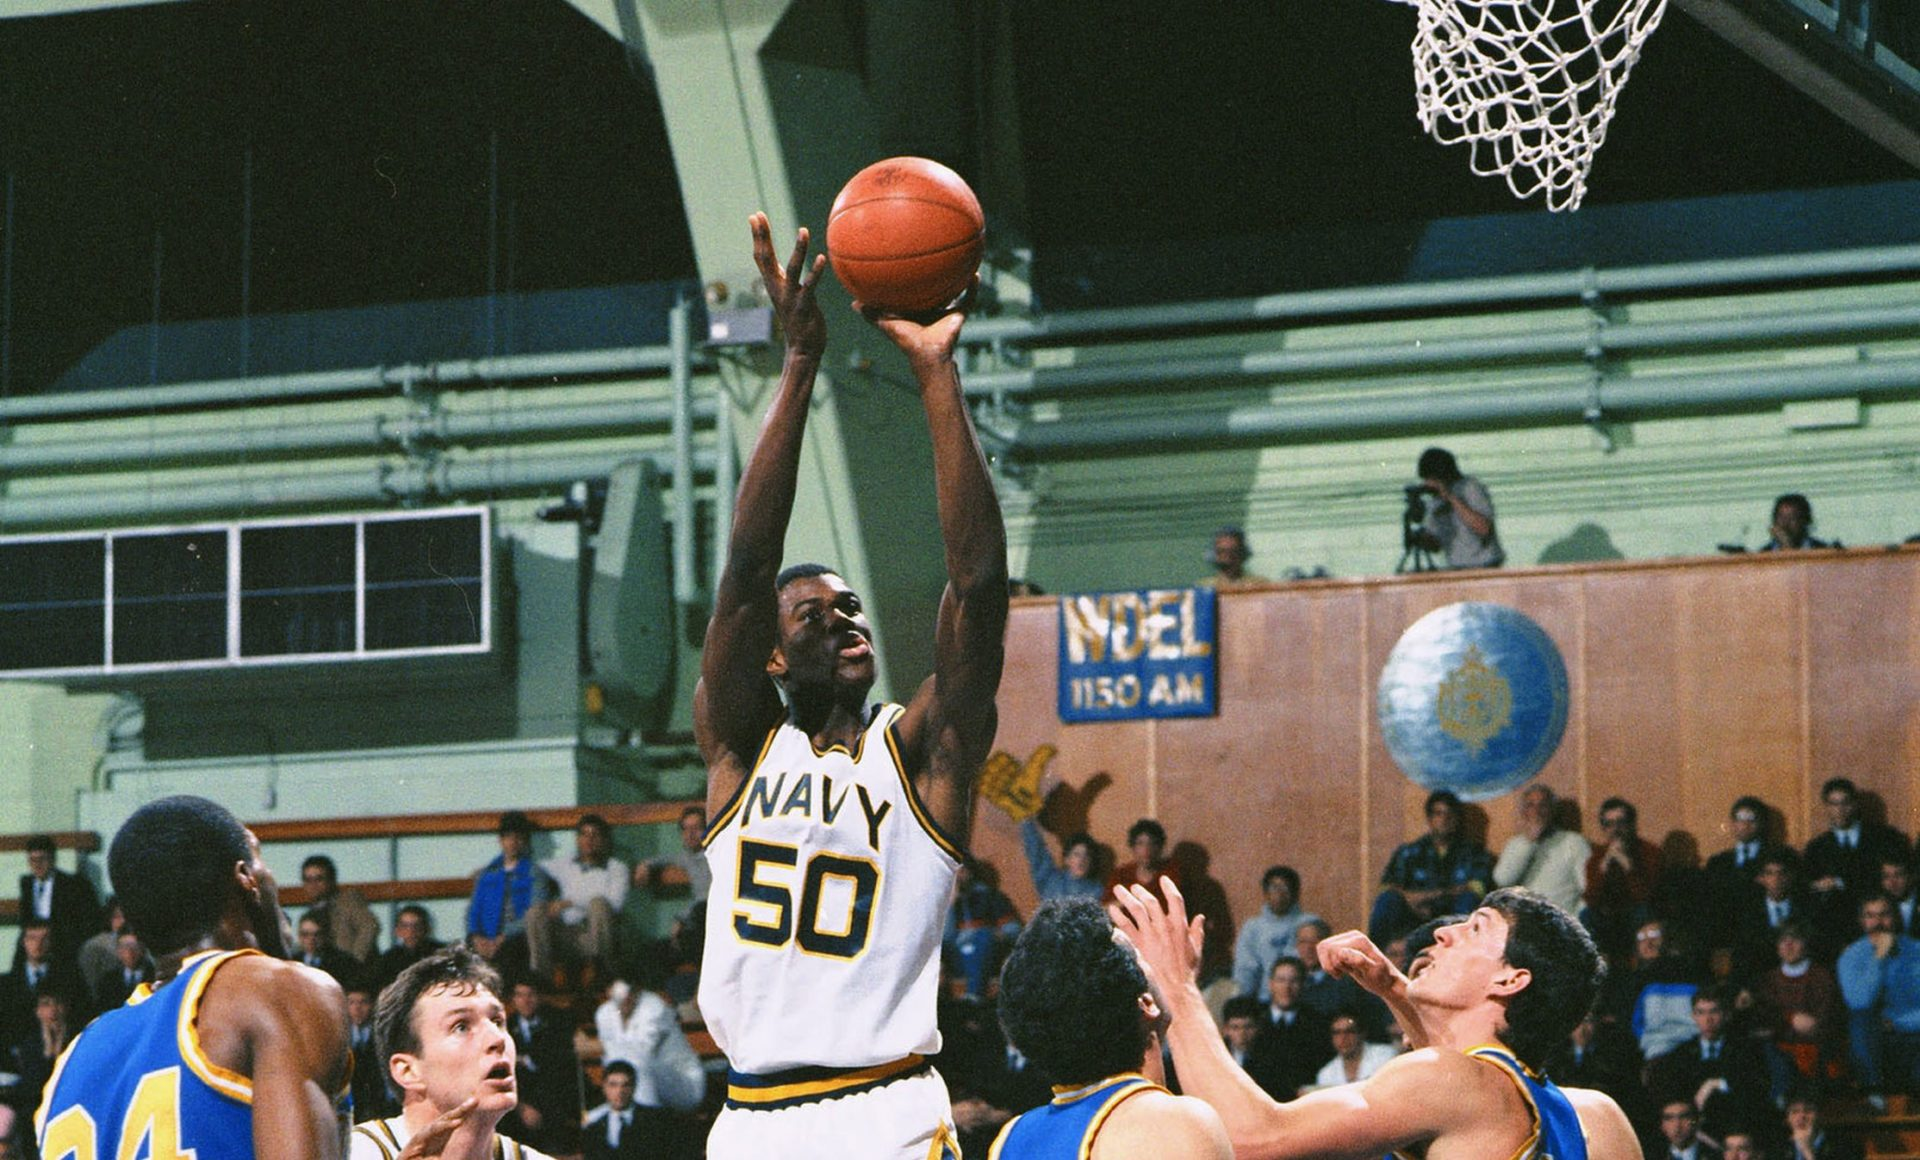 David Robinson (Navy, 1983 1987)